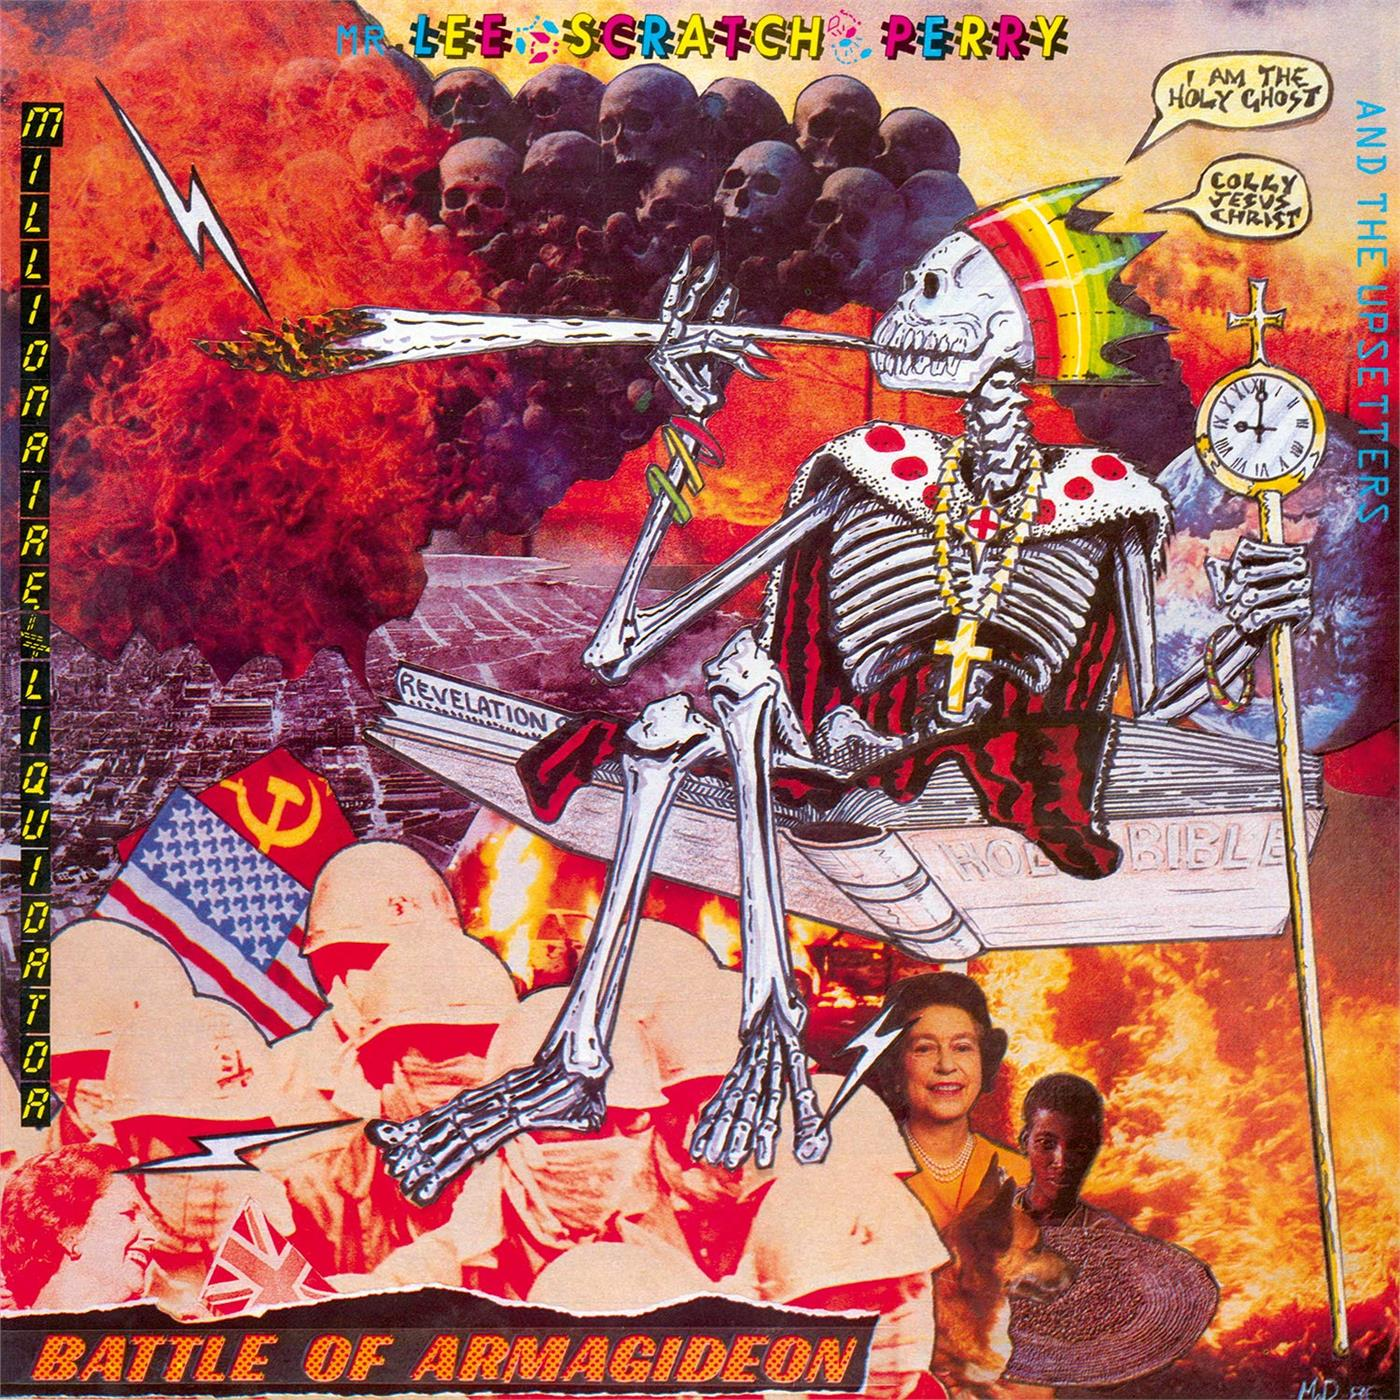 MOVLP2525 Music on Vinyl  Lee Scratch Perry Battle Of Armagideon (LP)